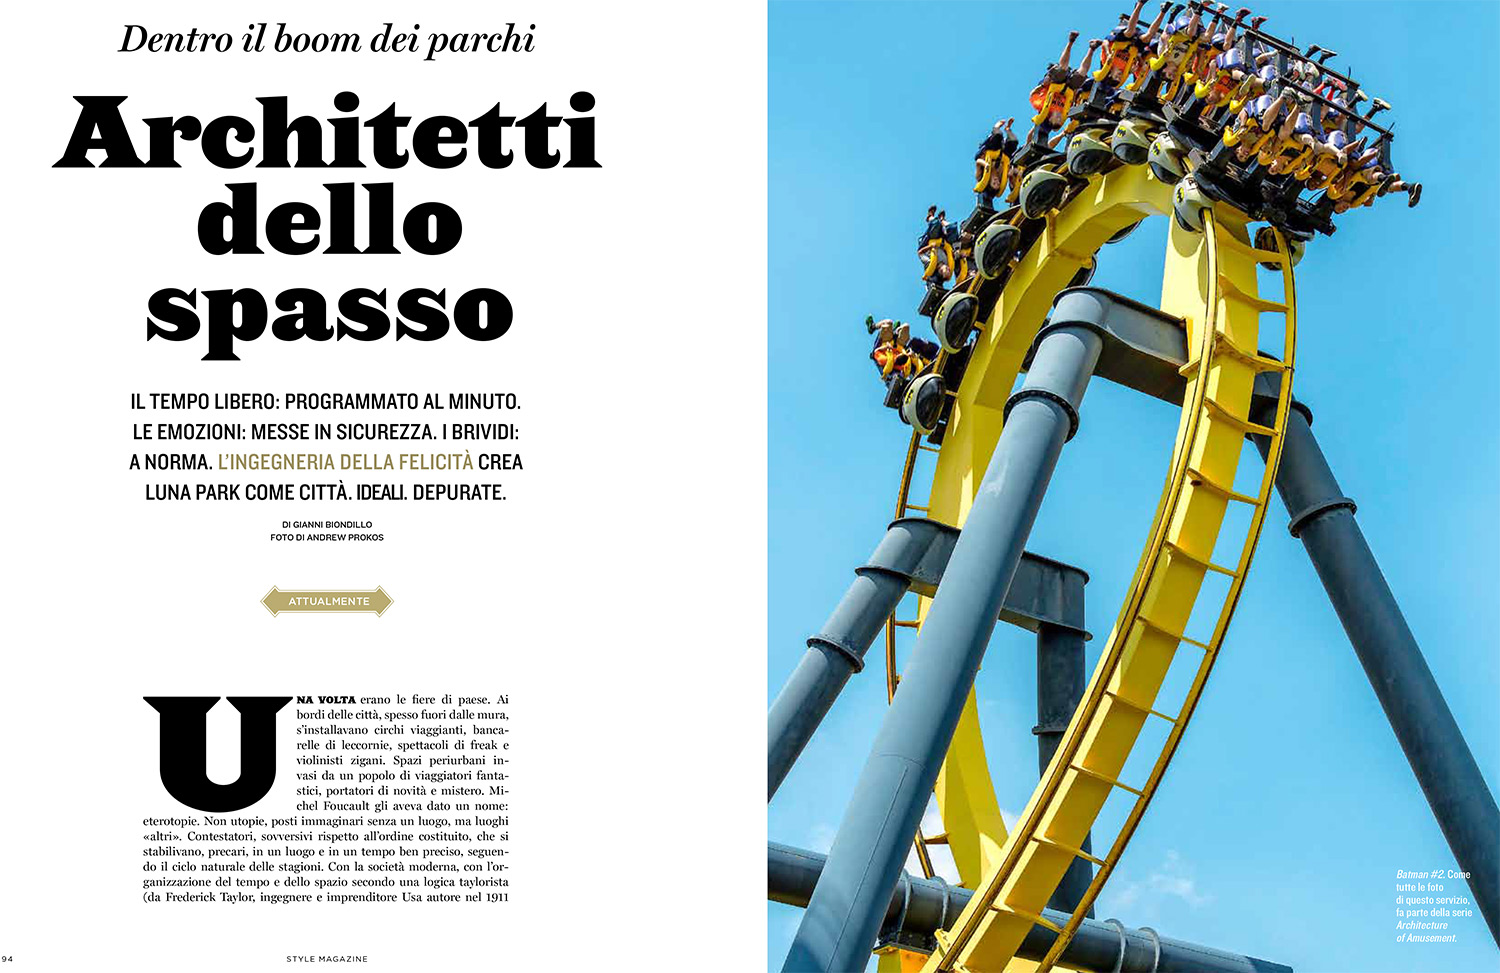 The Architecture of Amusement - Corriere della Sera Style Magazine